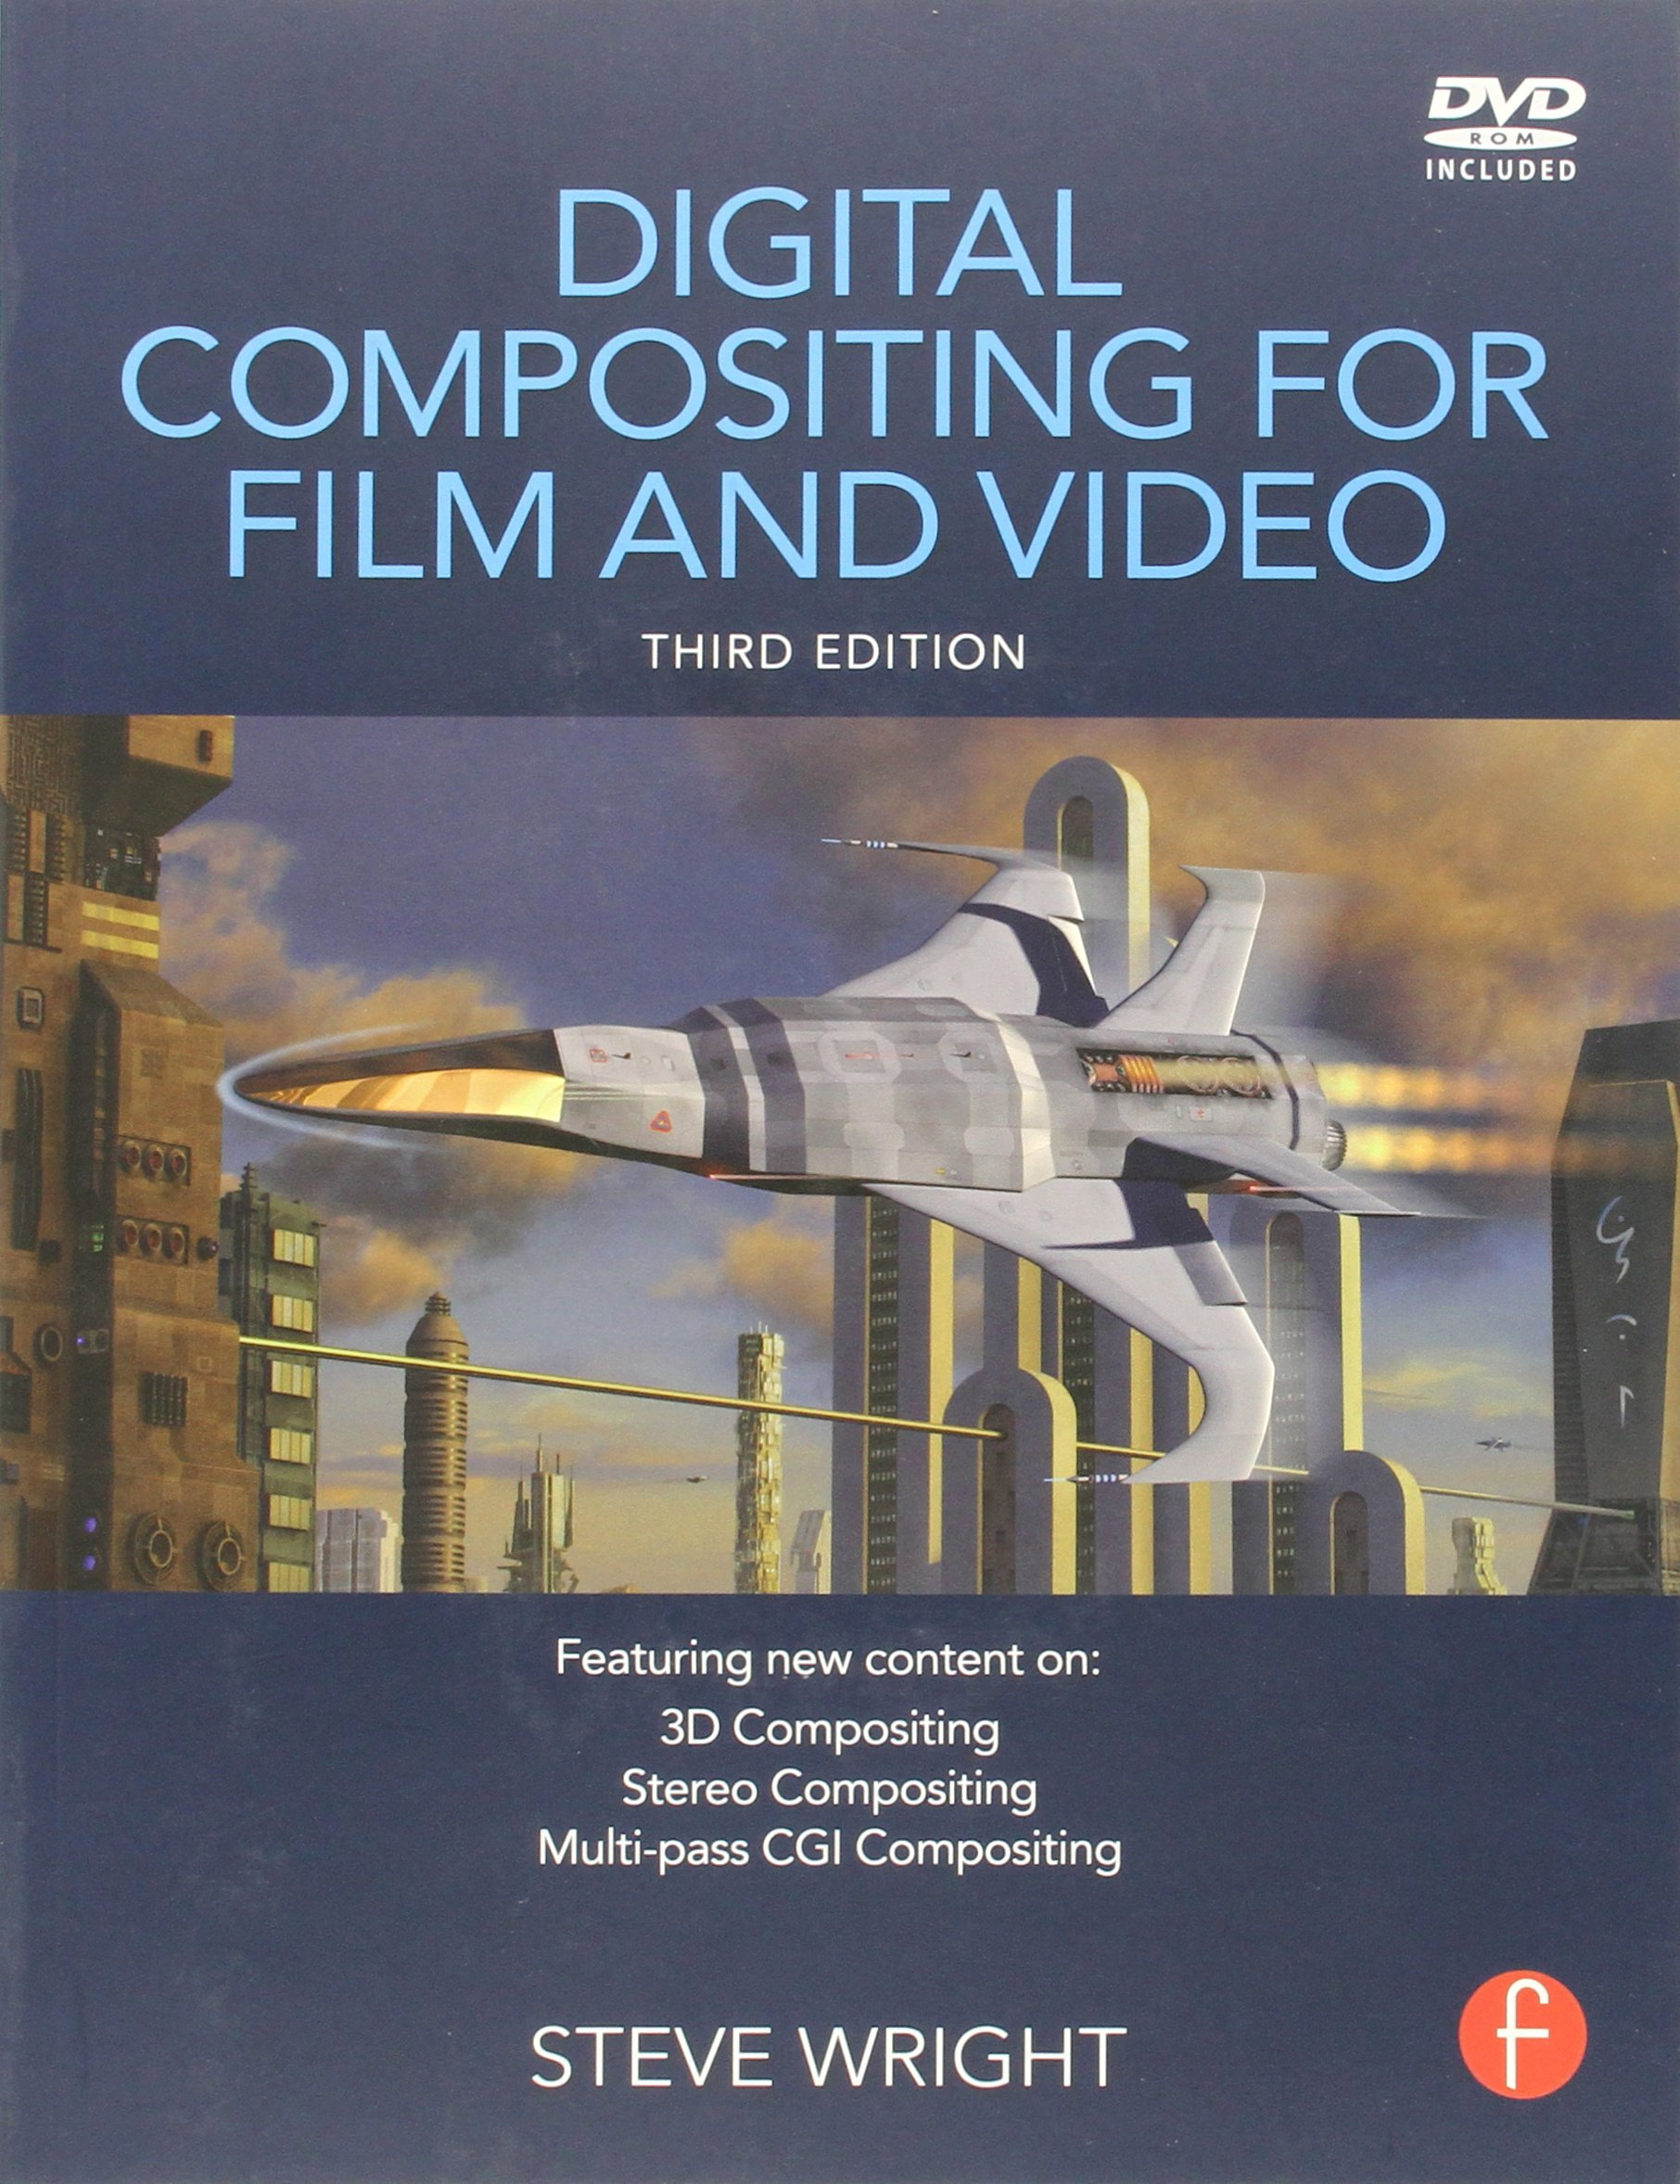 Digital Compositing for Film and Video: Amazon co uk: Steve Wright